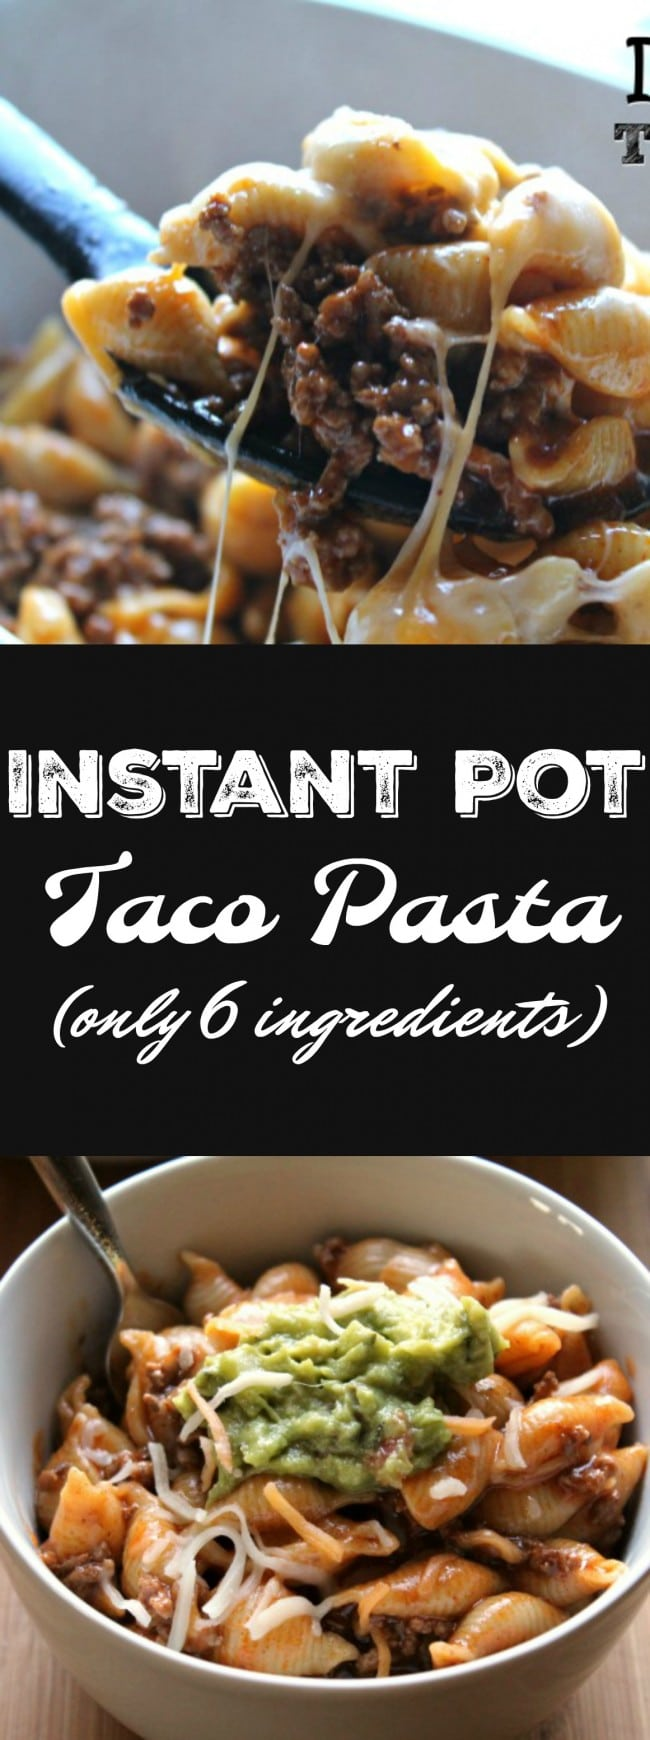 Instant pot taco pasta only 6 ingredients foody schmoody blog instant pot taco pasta 6 ingredients forumfinder Image collections